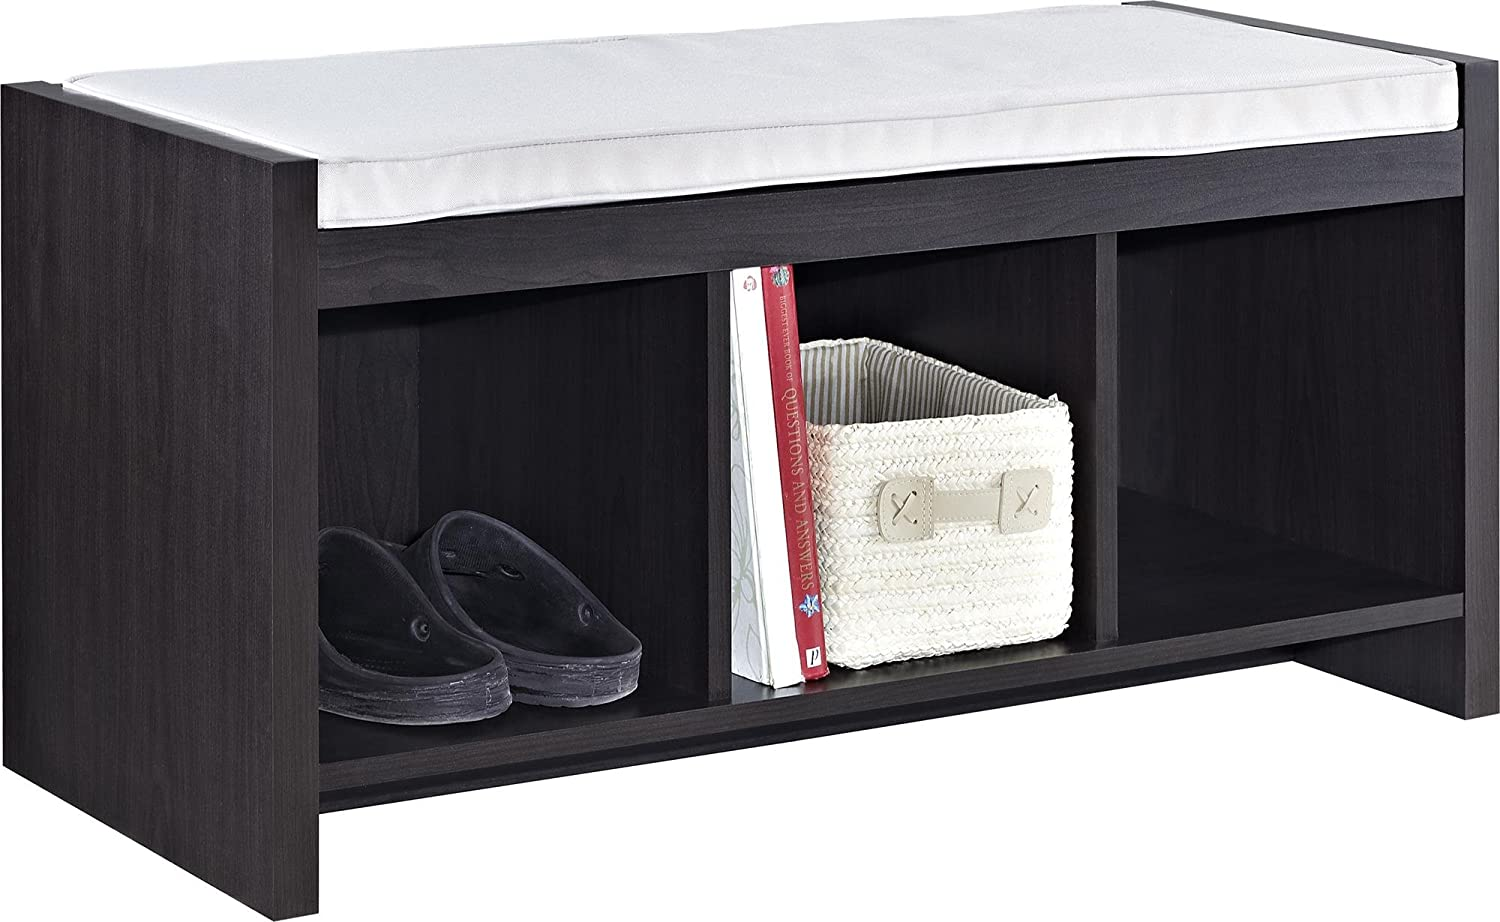 Espresso Foyer Bench : Amazon ameriwood home penelope entryway storage bench with